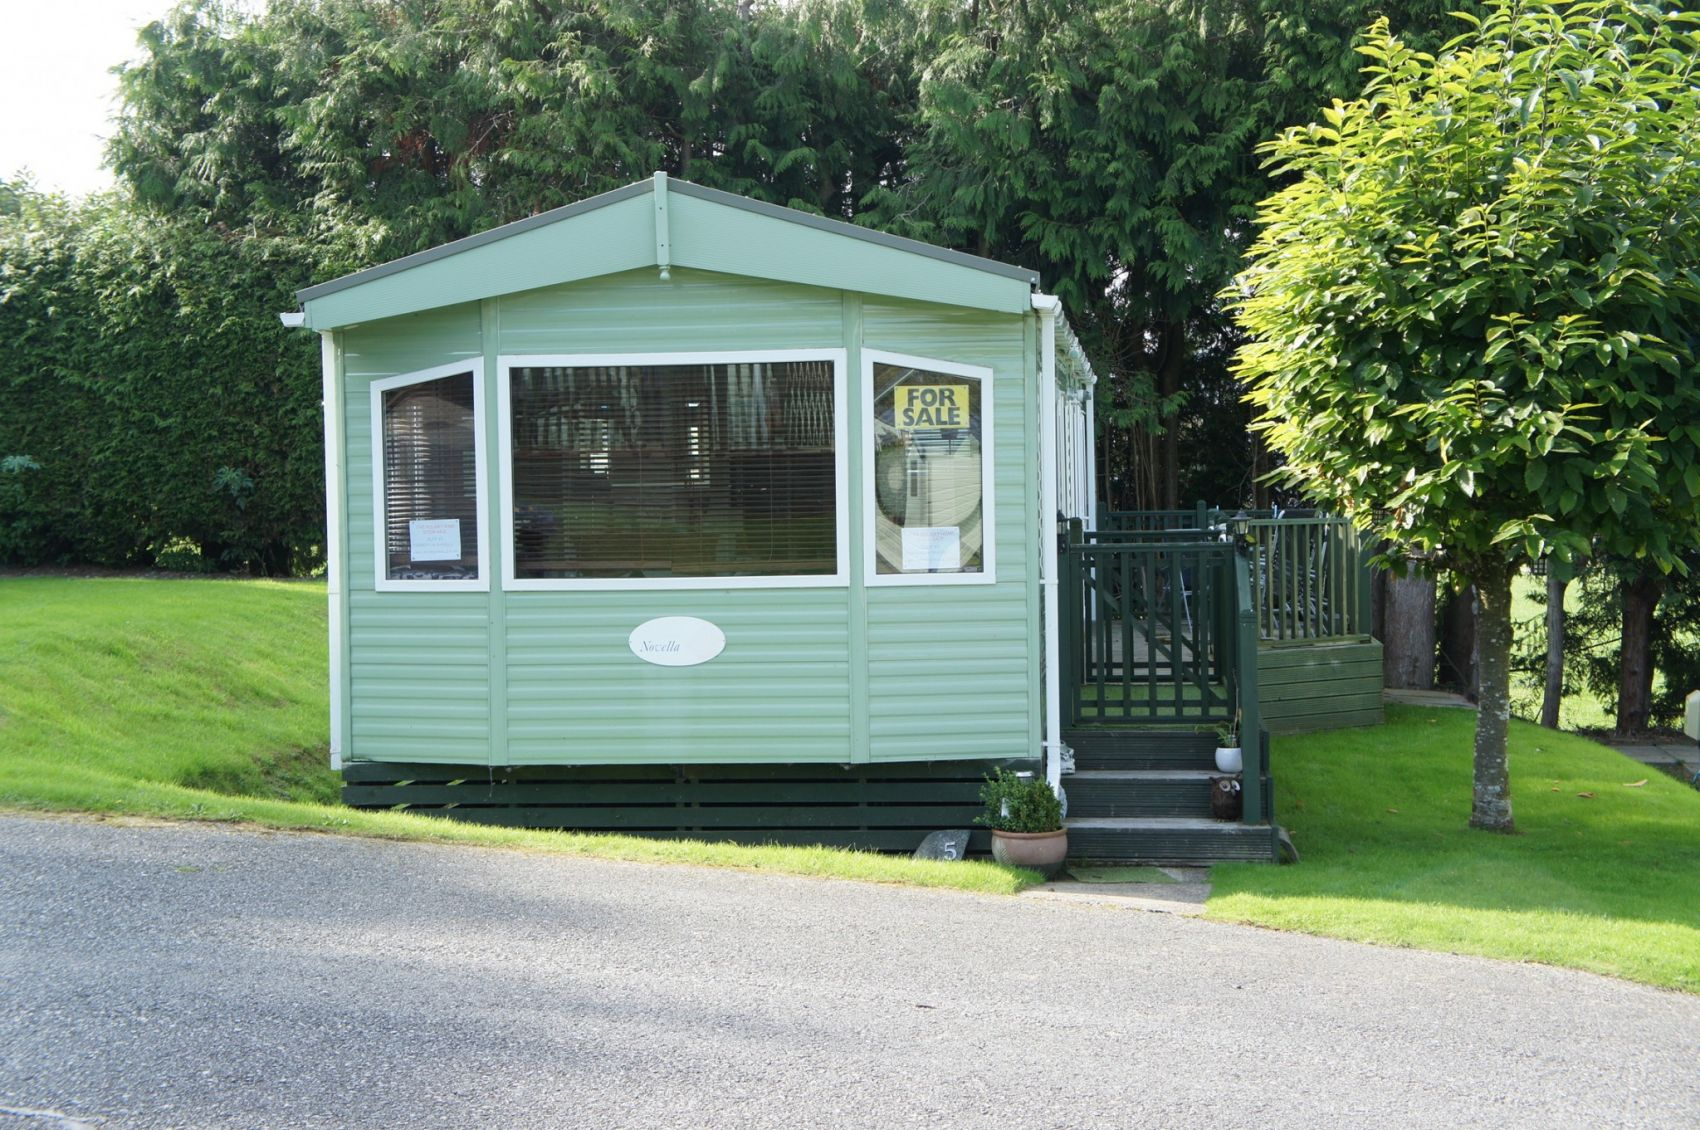 Holiday Homes Lodges For Sale In Bala Snowdonia North